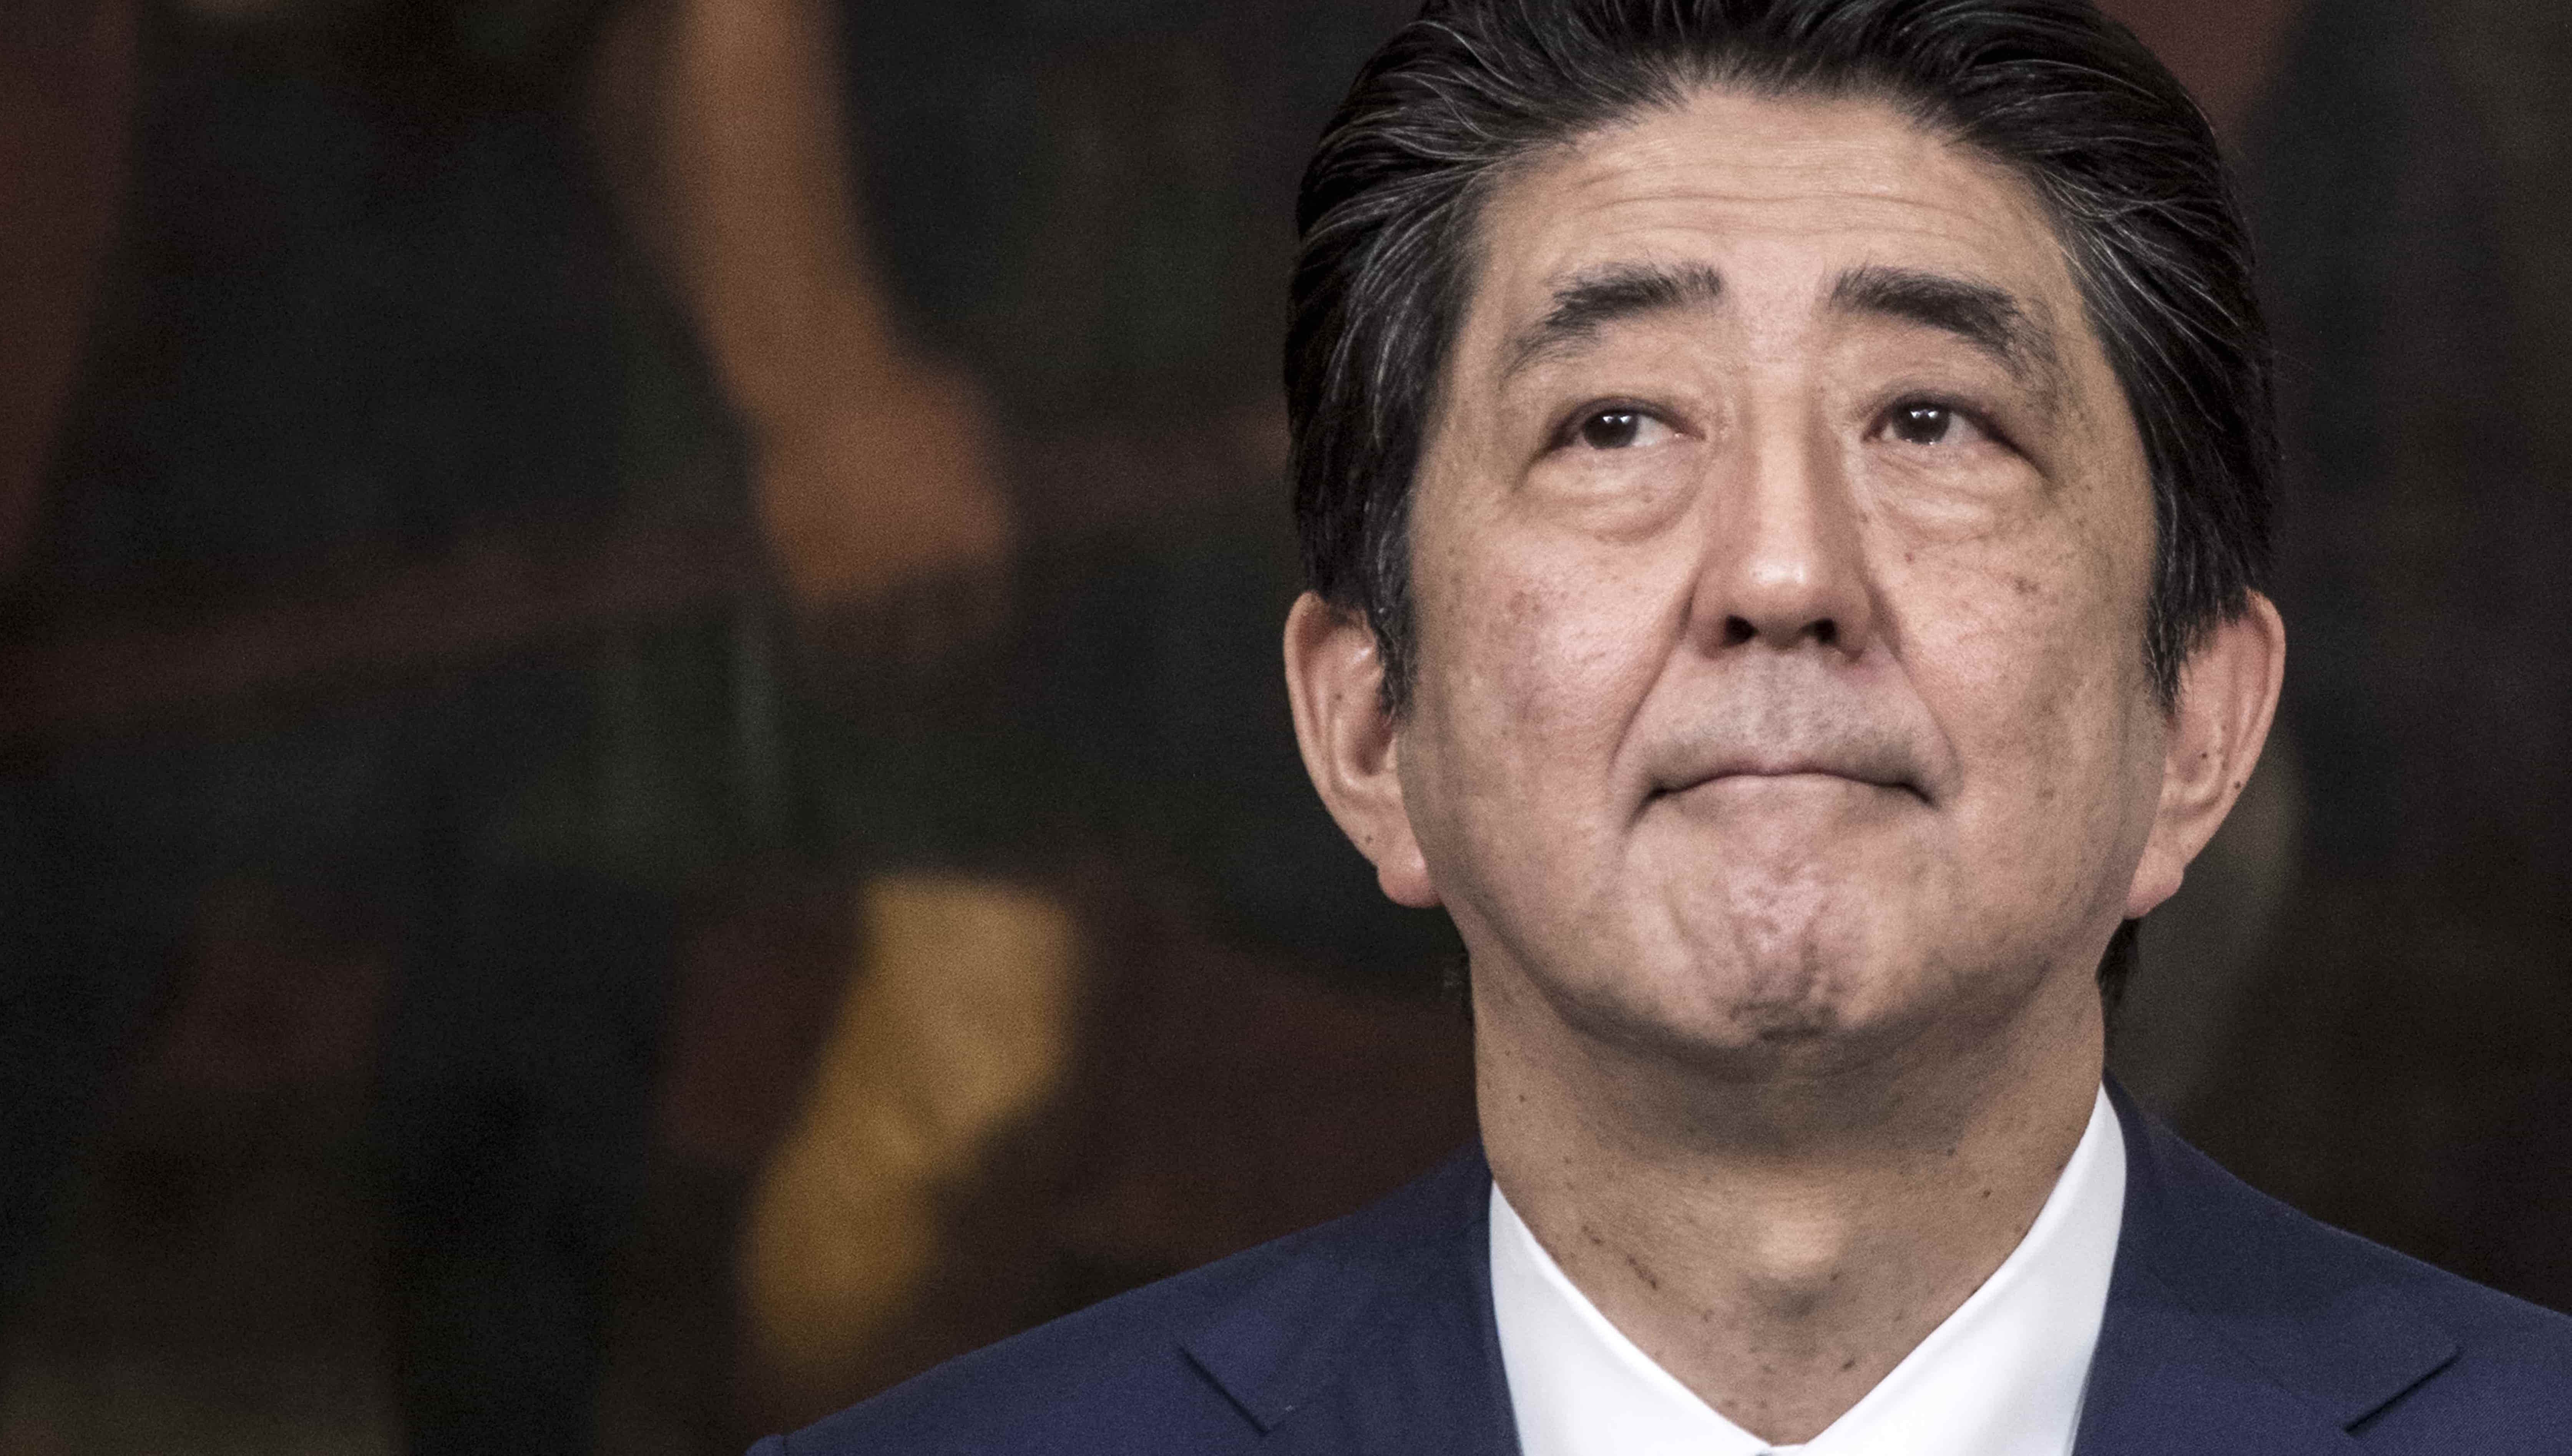 Japanese Prime Minister Shinzo Abe (Photo: Alessandra Benedetti/Getty)